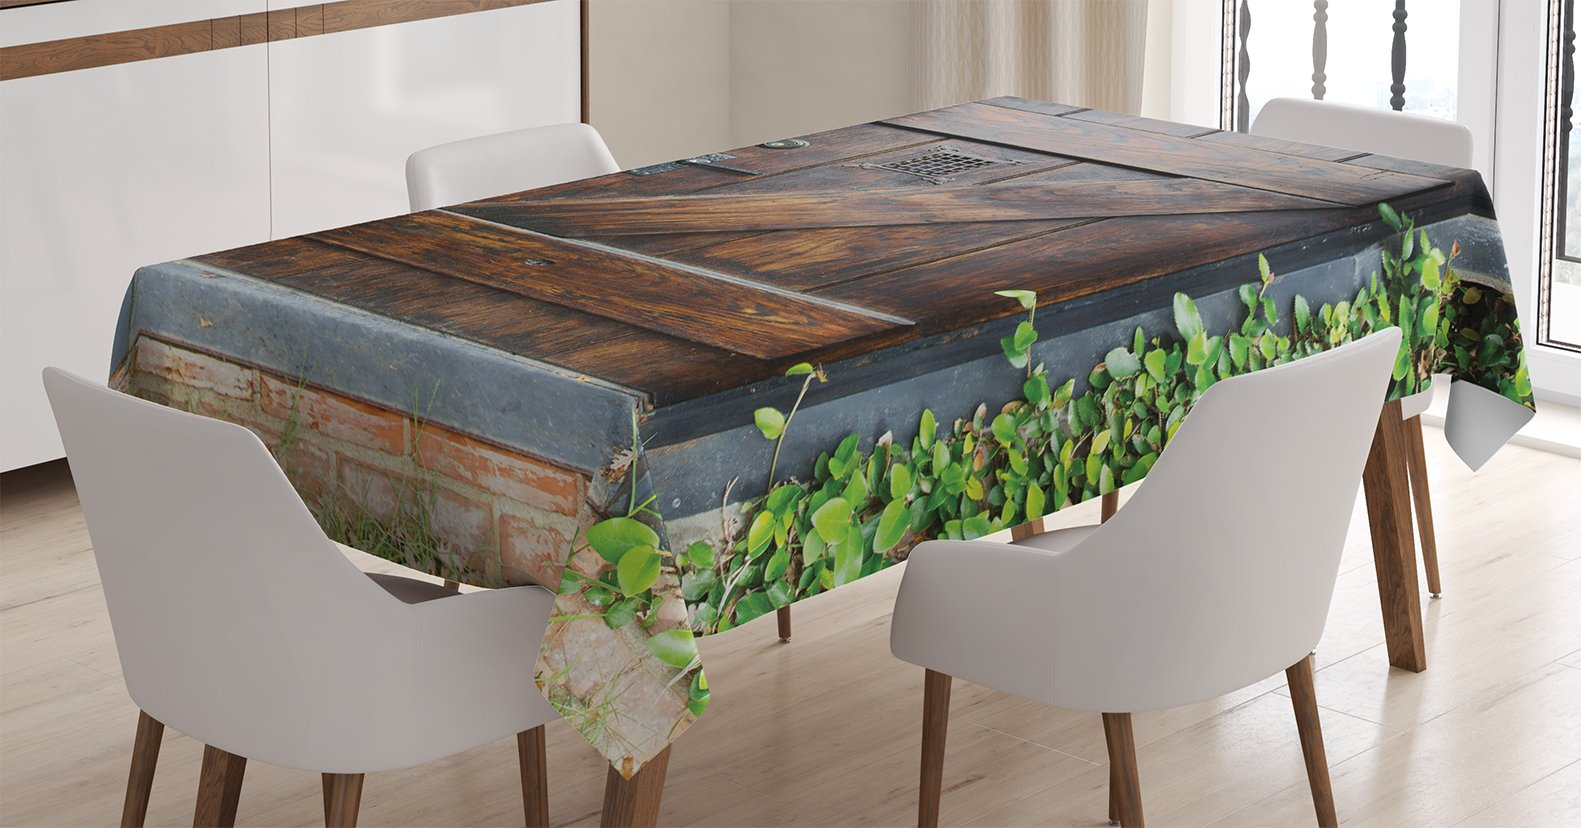 Ambesonne Rustic Decor Tablecloth, Small Spanish Style Dark Stained Wood Door Secret Garden with Grated Window Art Picture, Dining Room Kitchen Rectangular Table Cover, 60 X 84 inches